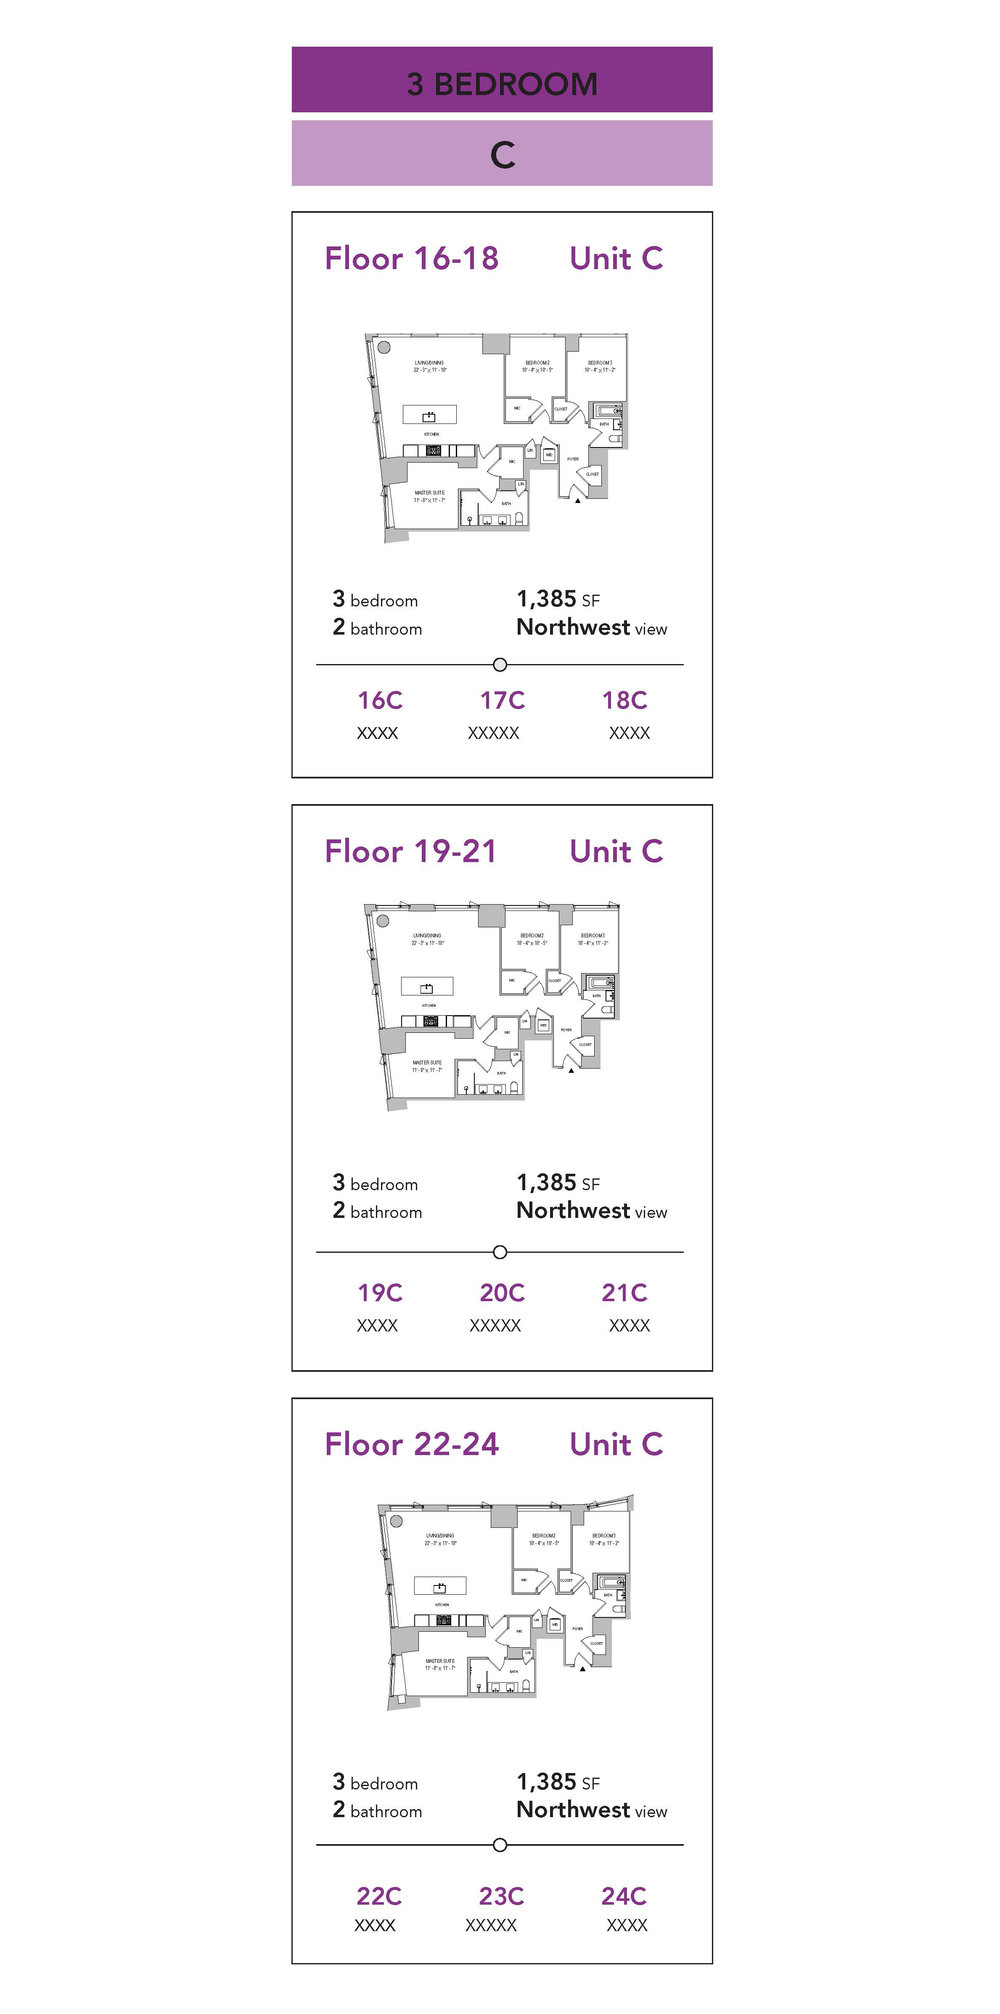 180809_11 Hoyt_Floorplan Poster Schemes 4_2.jpg